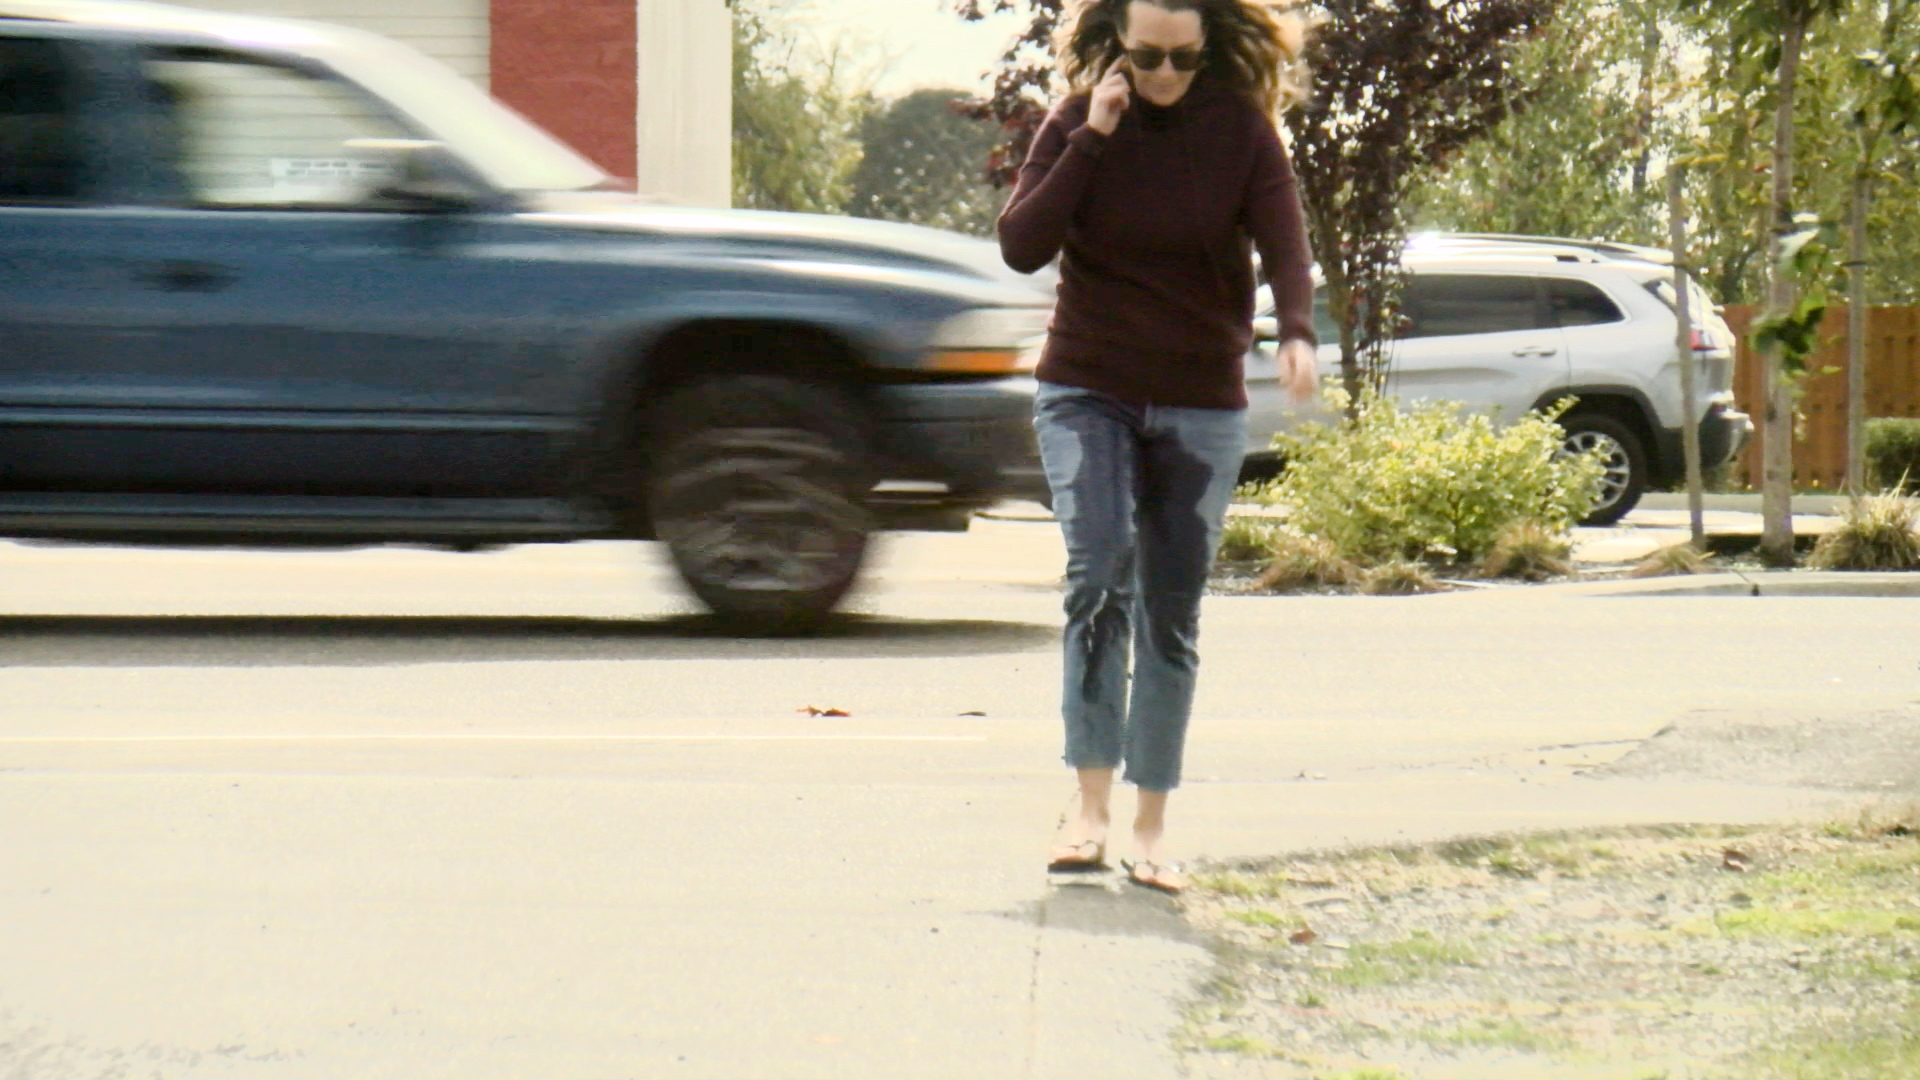 Alisha clearly and visibly wets her pants as she walks across a busy street.